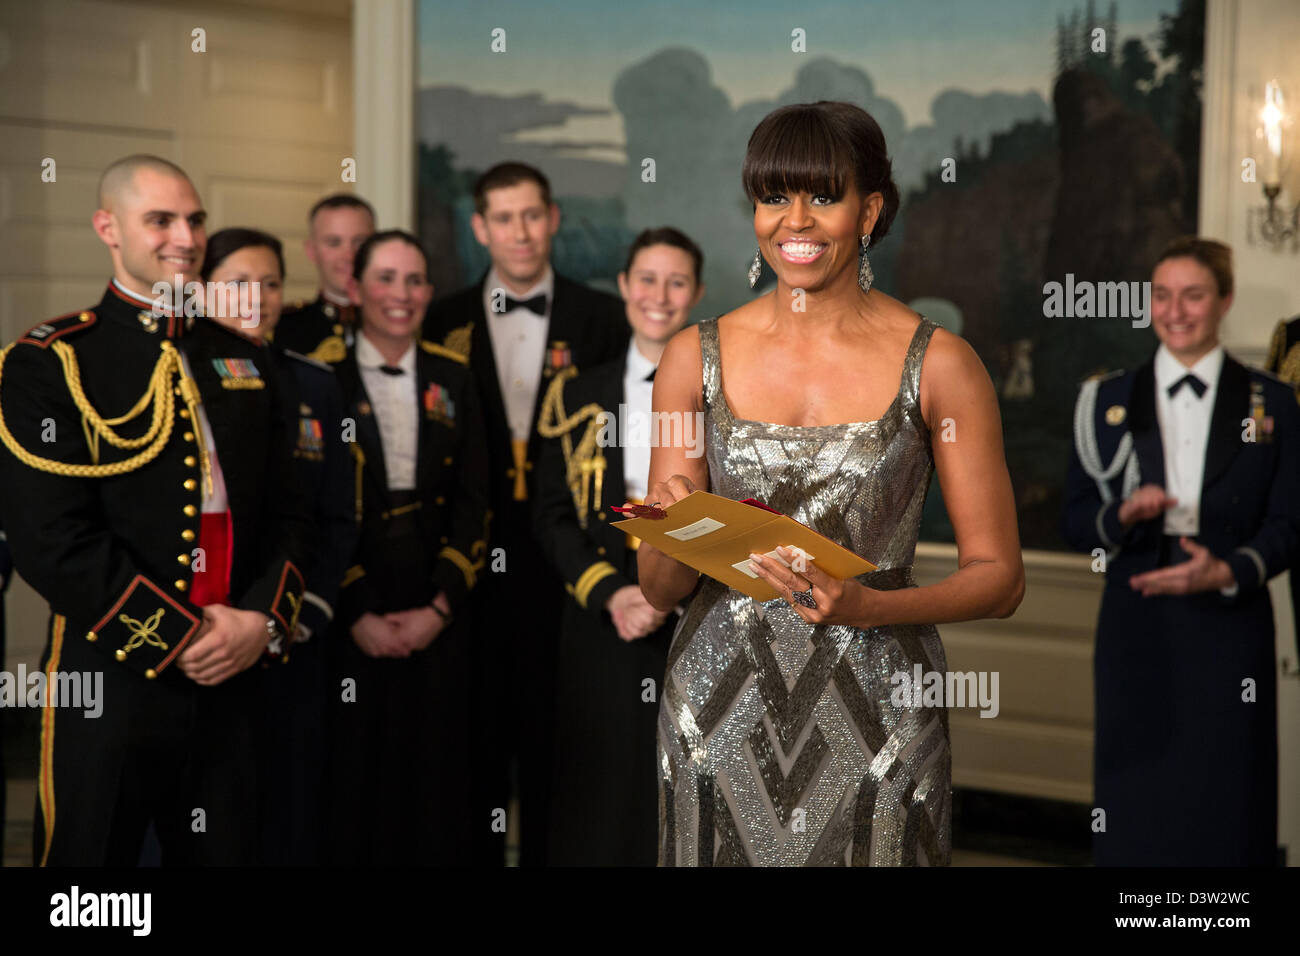 Washington DC, USA. 24th February 2013. US First Lady Michelle Obama announces the Best Picture Oscar which was - Stock Image